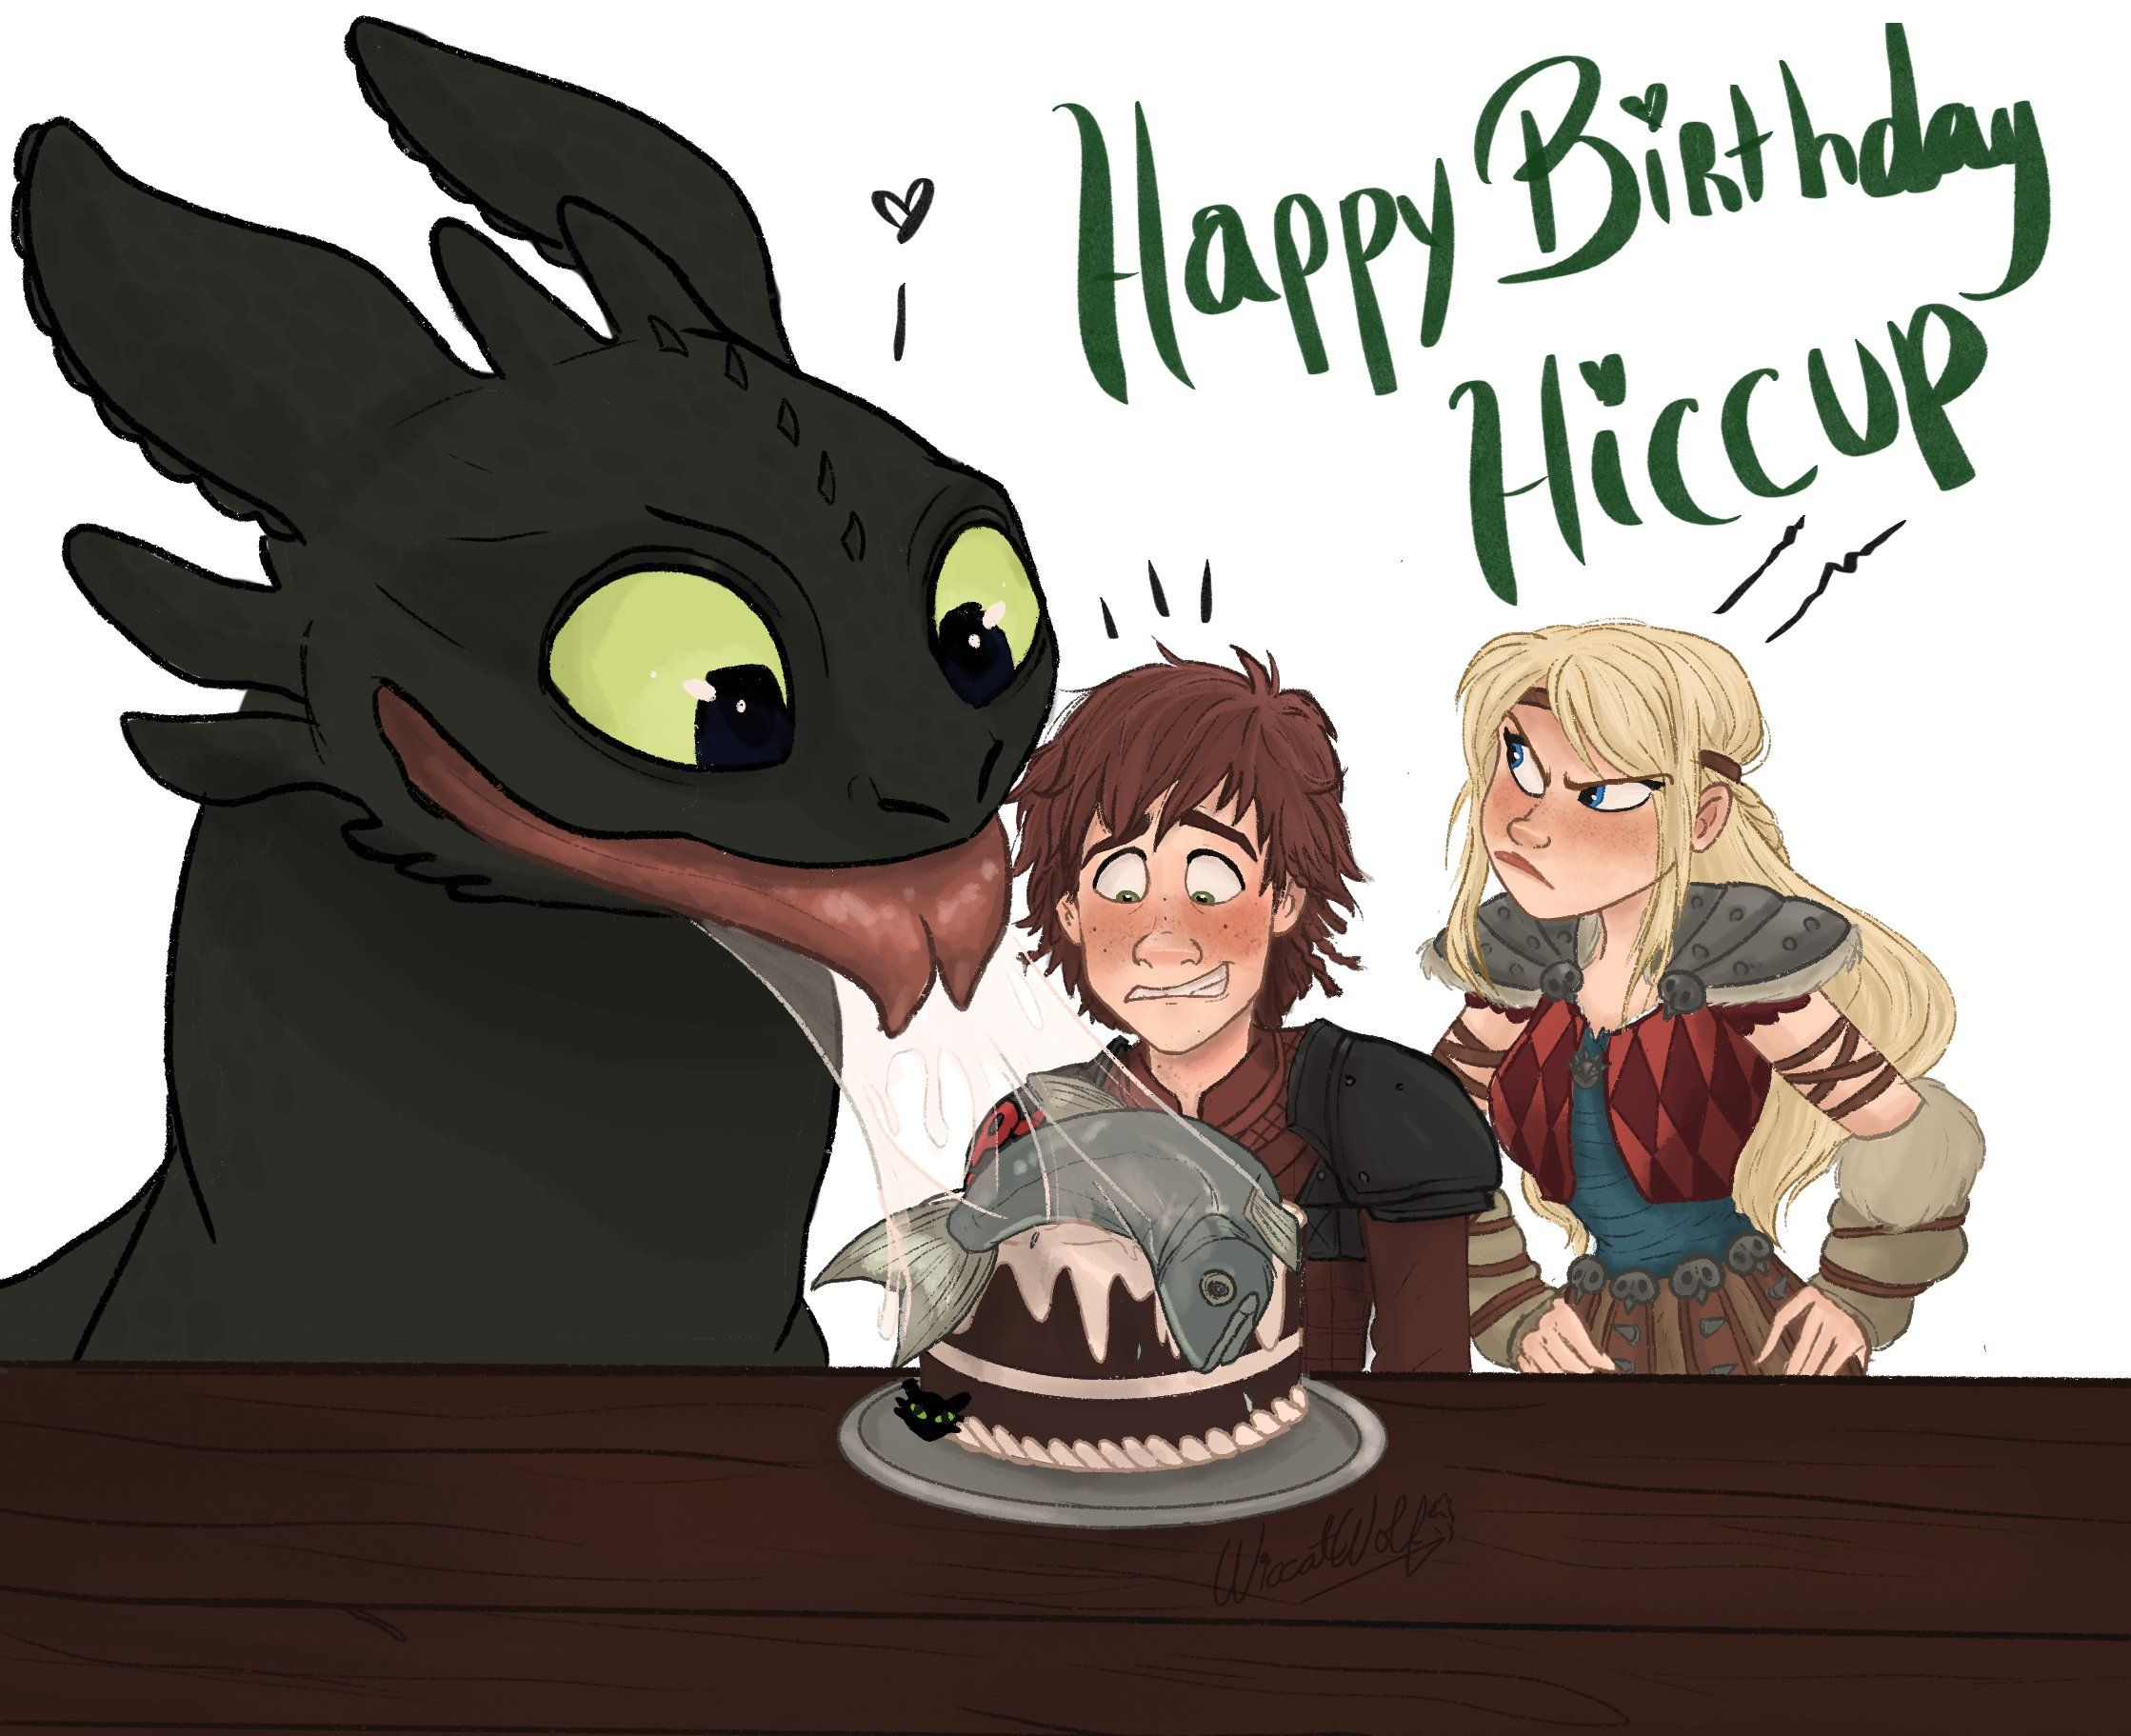 Pin By Mrna On Httyd Funny Dragon How To Train Dragon How Train Your Dragon